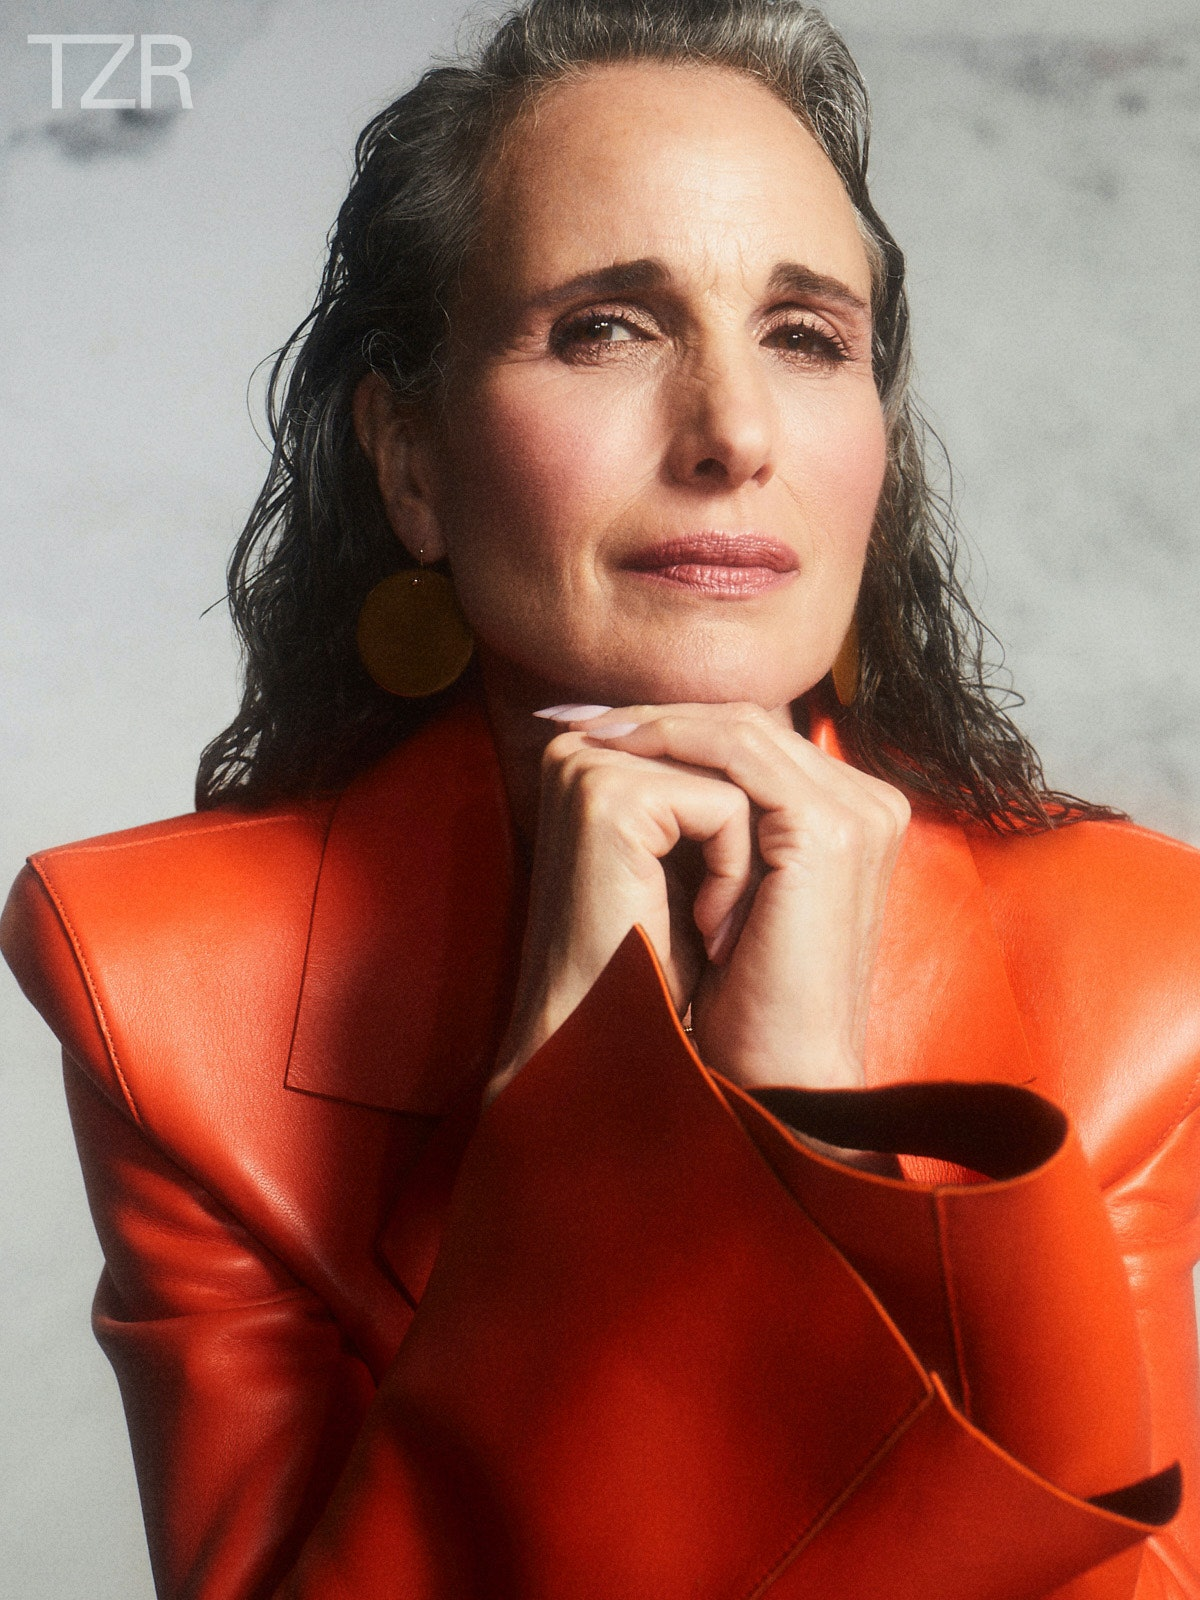 TZR cover star Andie MacDowell's beauty routine includes barely there foundation.